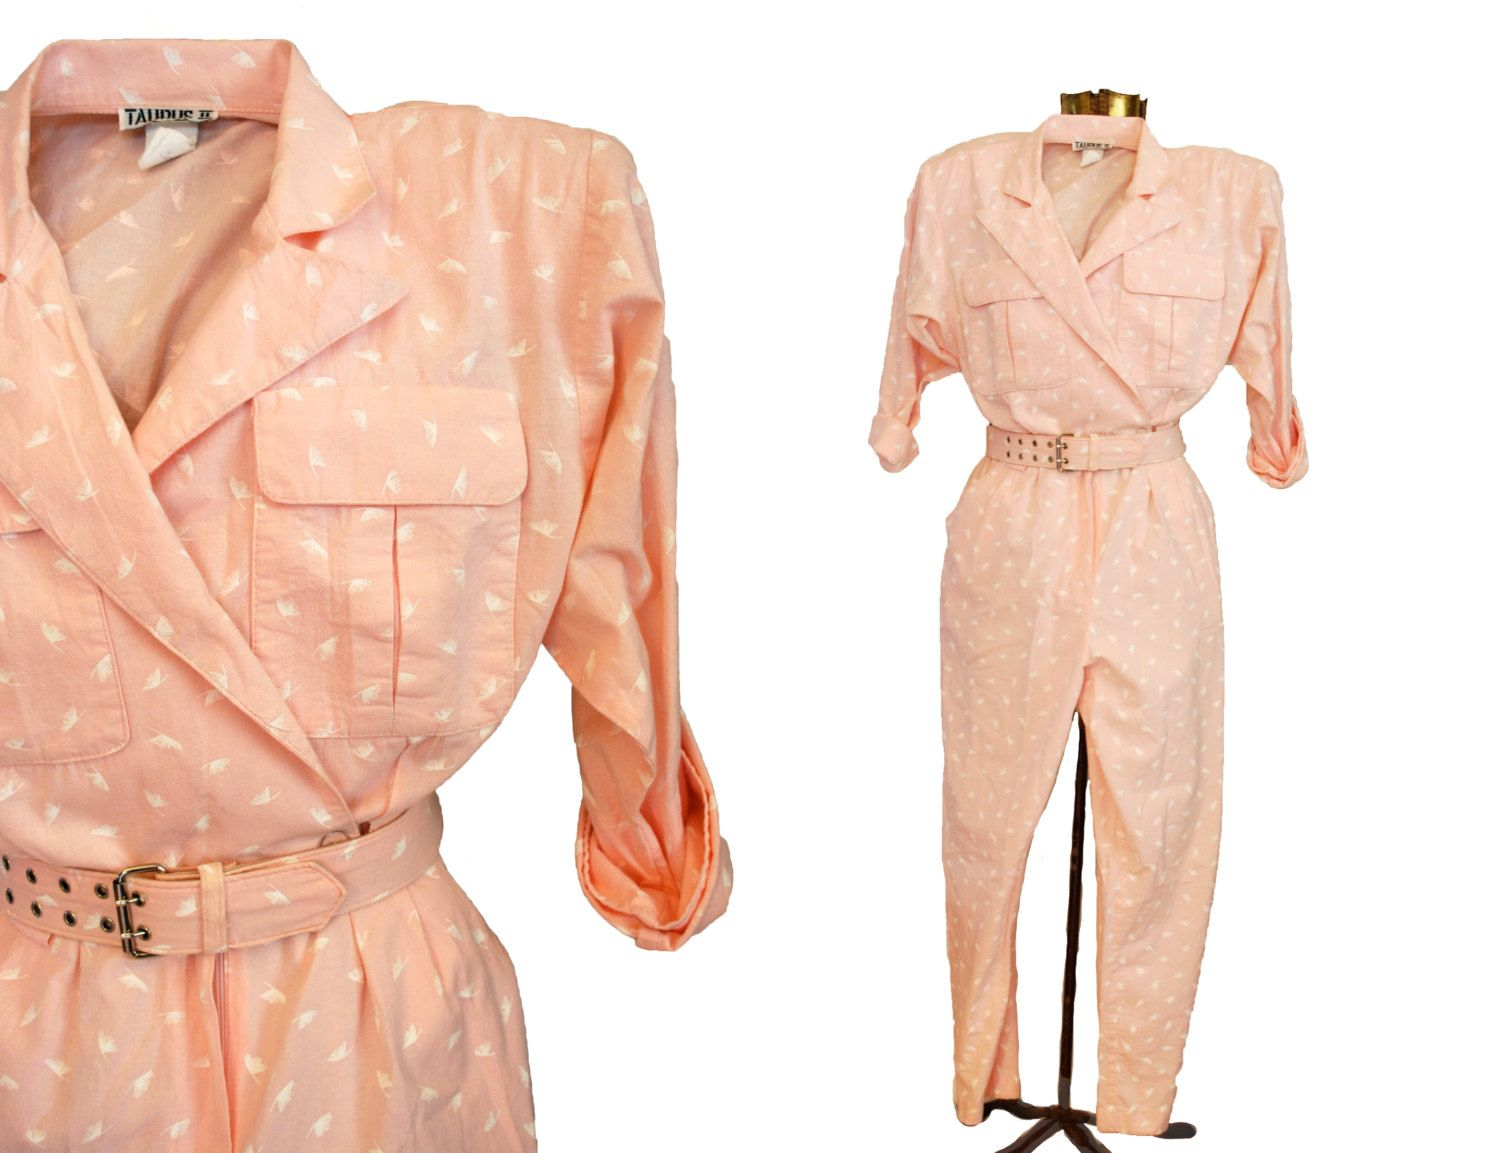 1970s Jumpsuit 1980s Jumpsuit Taurus II Union by Lexigoesthrifting